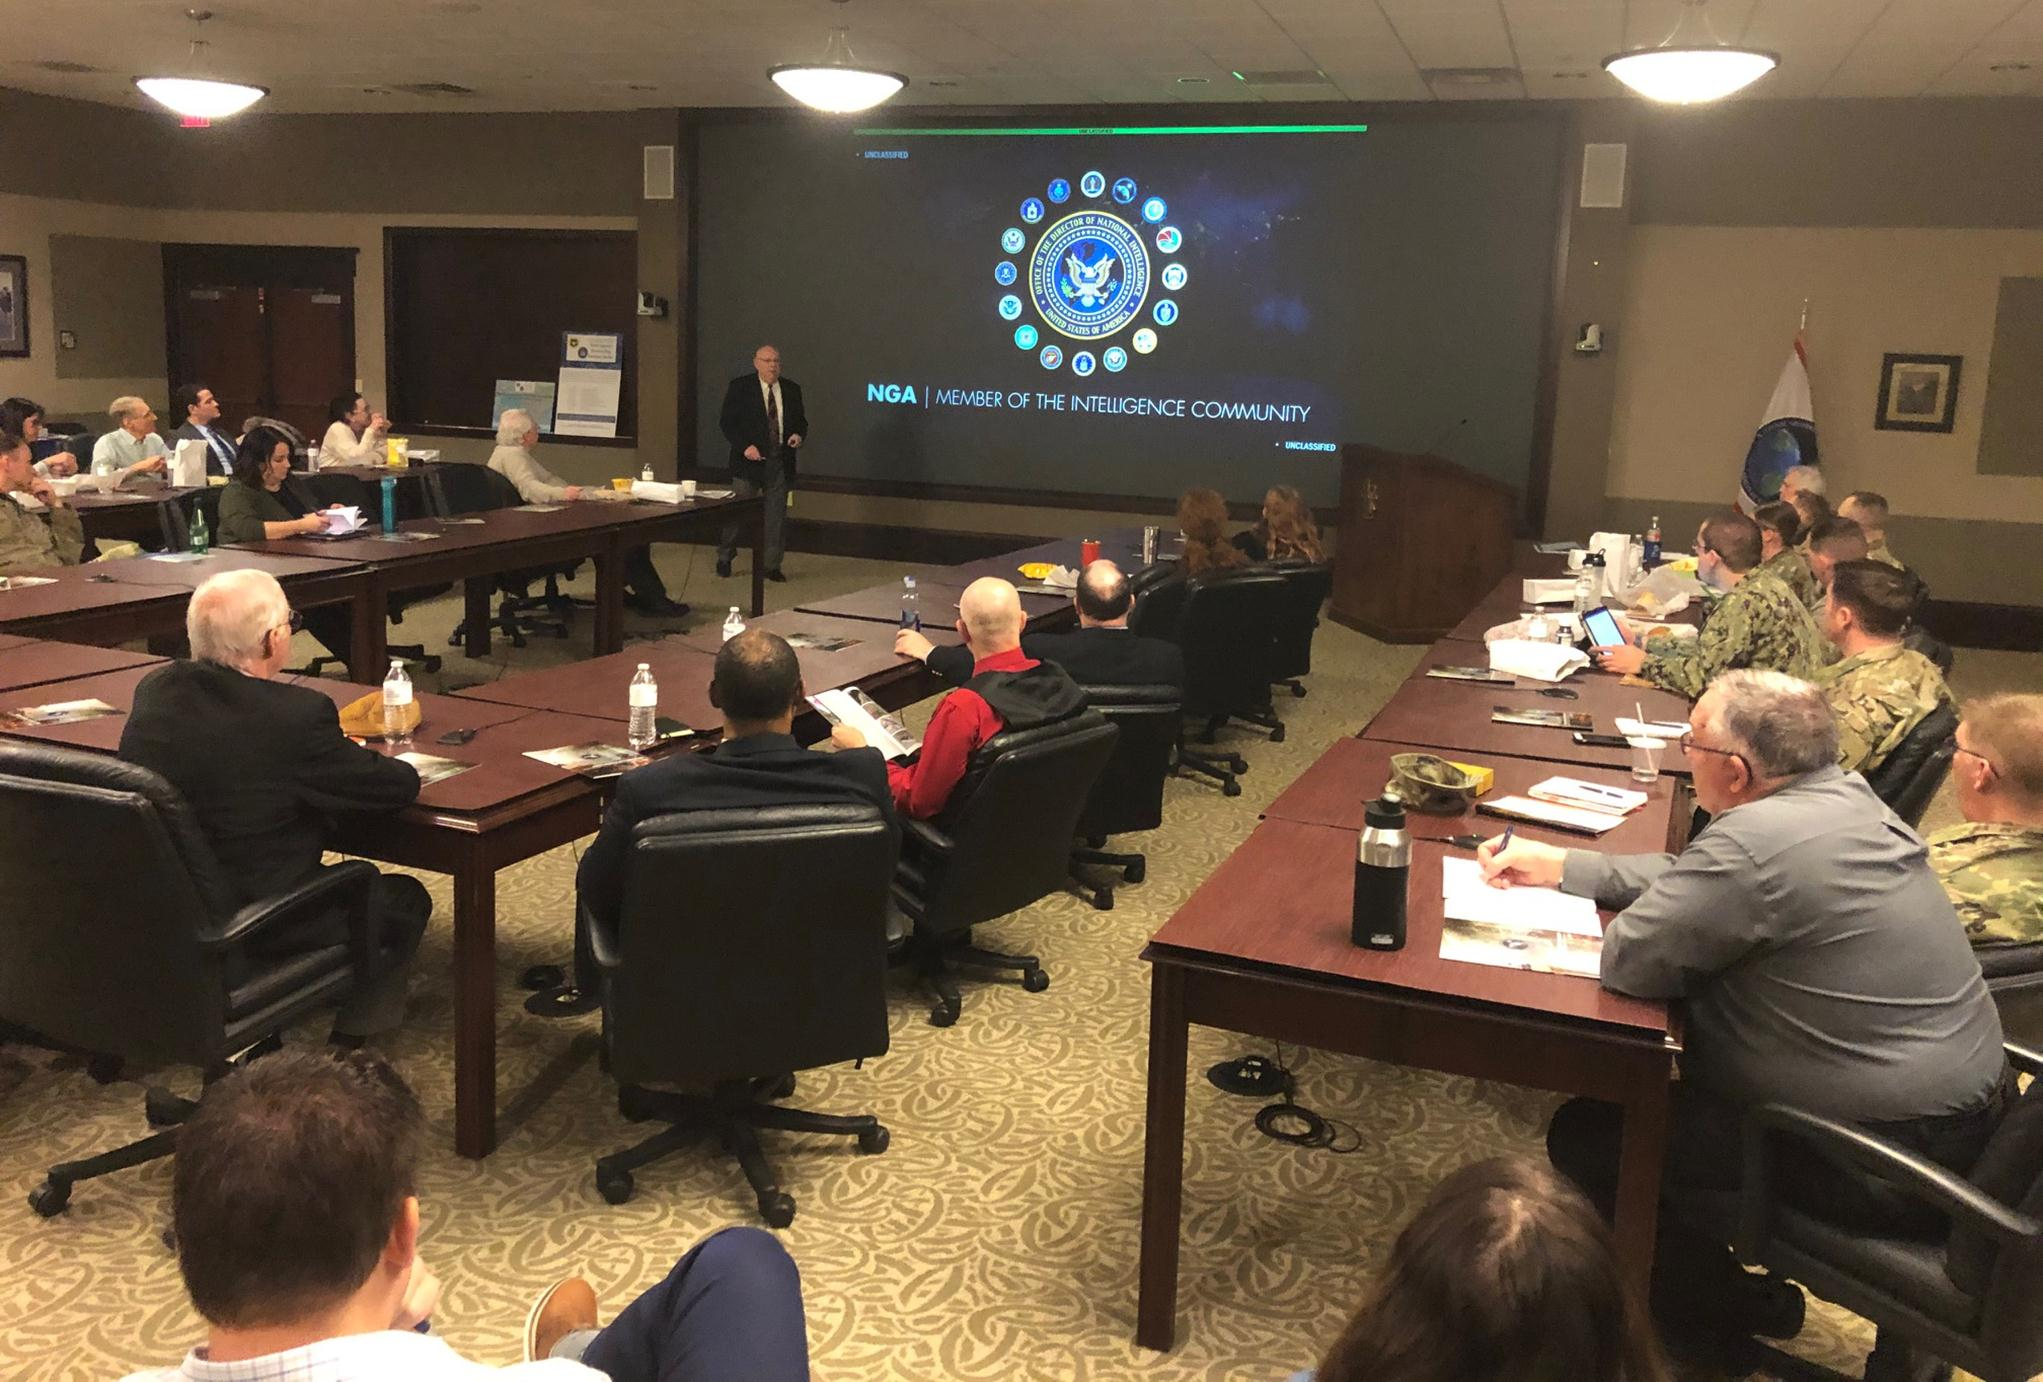 Mr. Ralph Erwin, Senior Intelligence Officer, speaks to students, faculty, and community members about the roles and missions of the National Geospatial-Intelligence Agency during the InterAgency Brown-Bag Lecture conducted Jan. 28, 2020, in the Lewis and Clark Center's Arnold Conference Room.